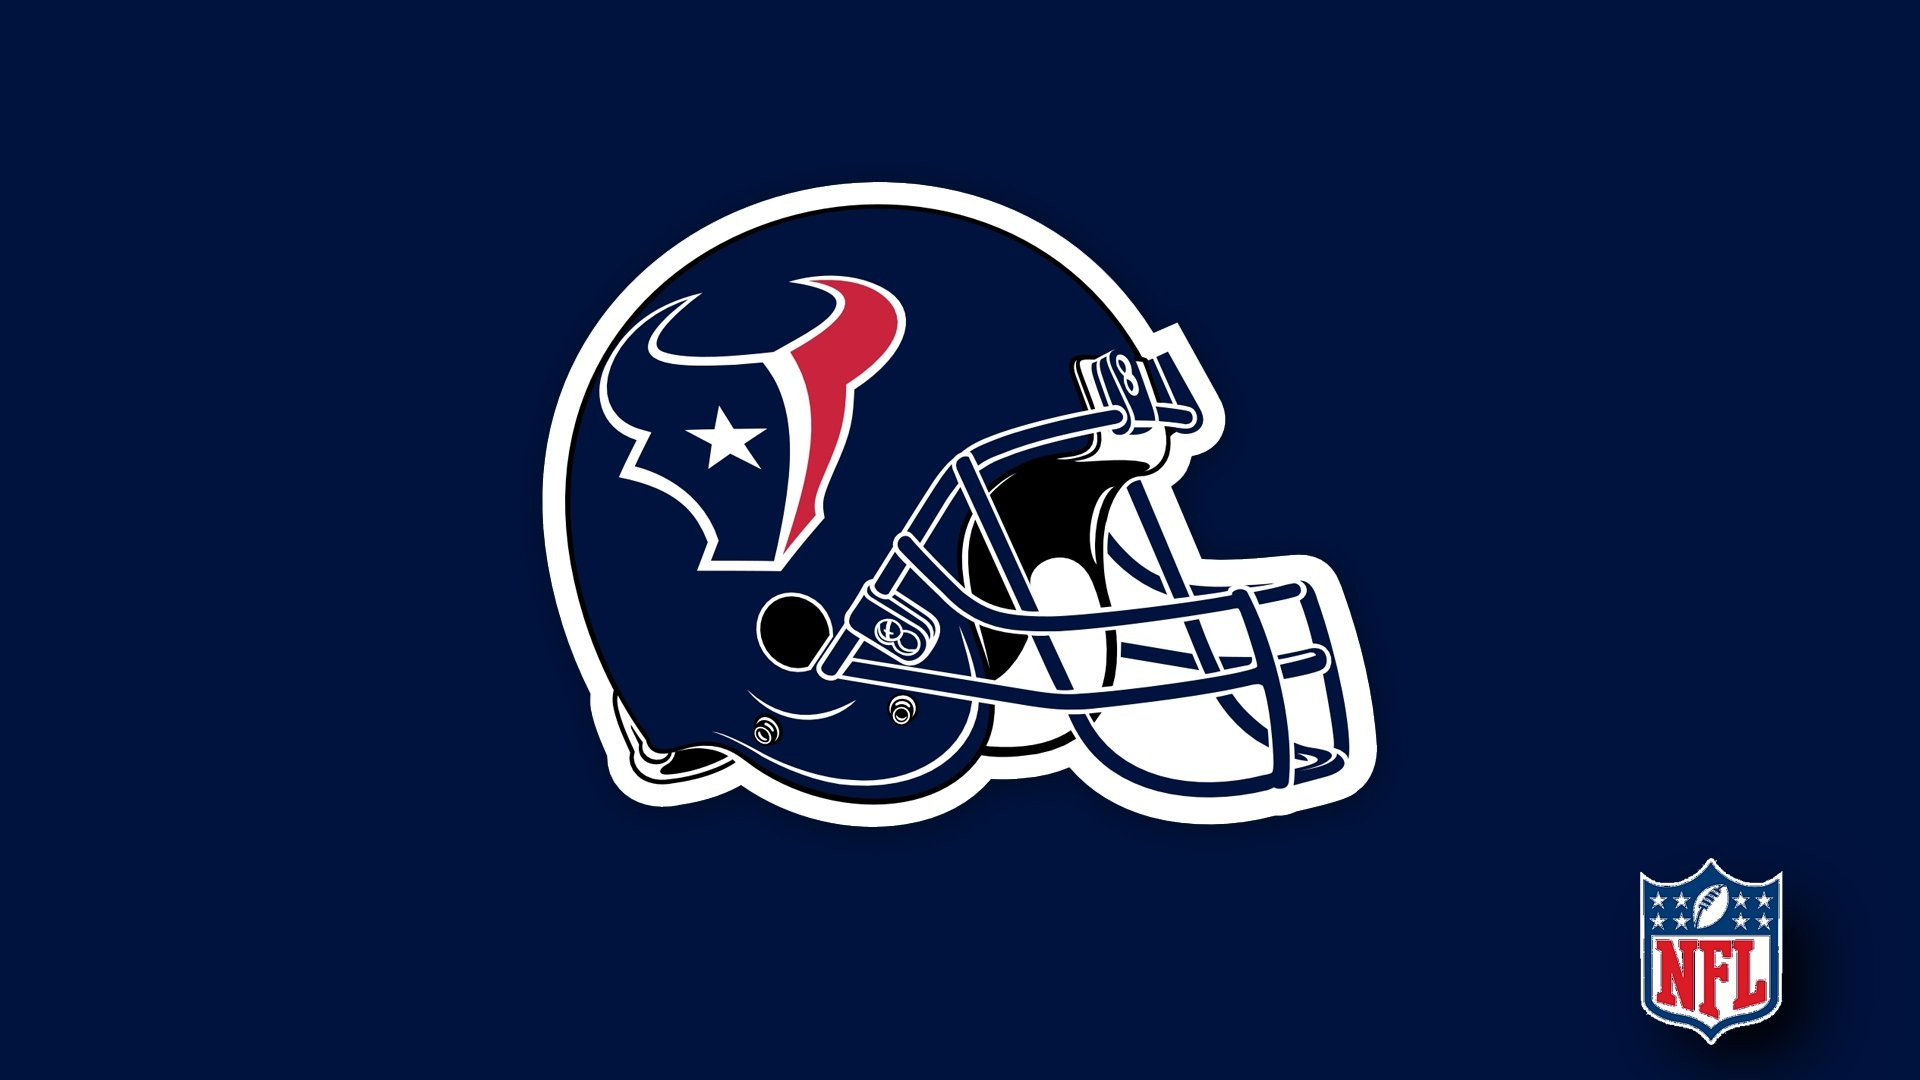 Wallpaper Houston Texans Helmet Resolution 1920x1284 Categories Nfl 1920x1080